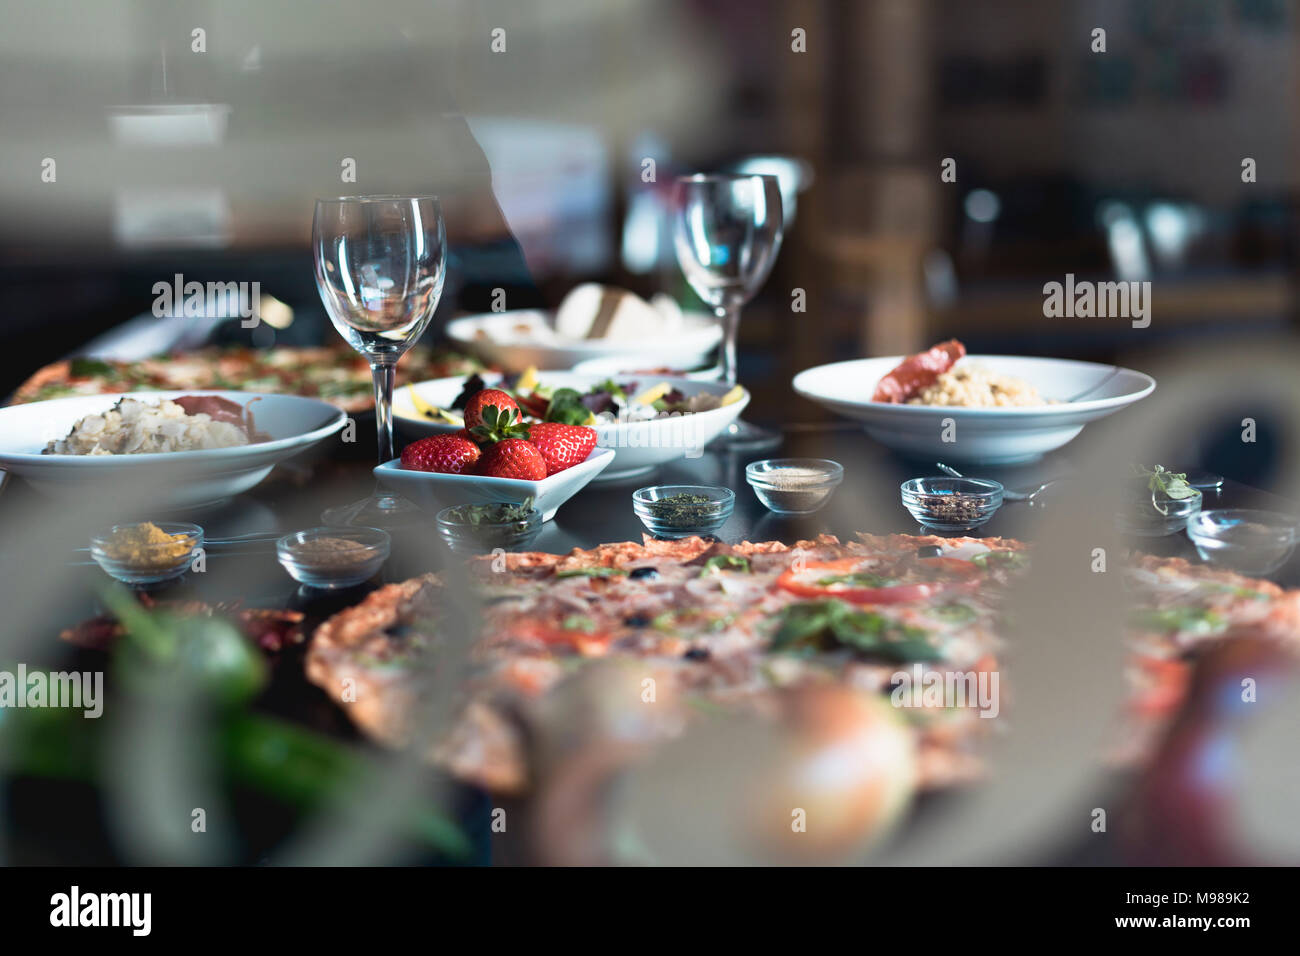 La cuisine italienne, pizzas, salades et snacks Photo Stock